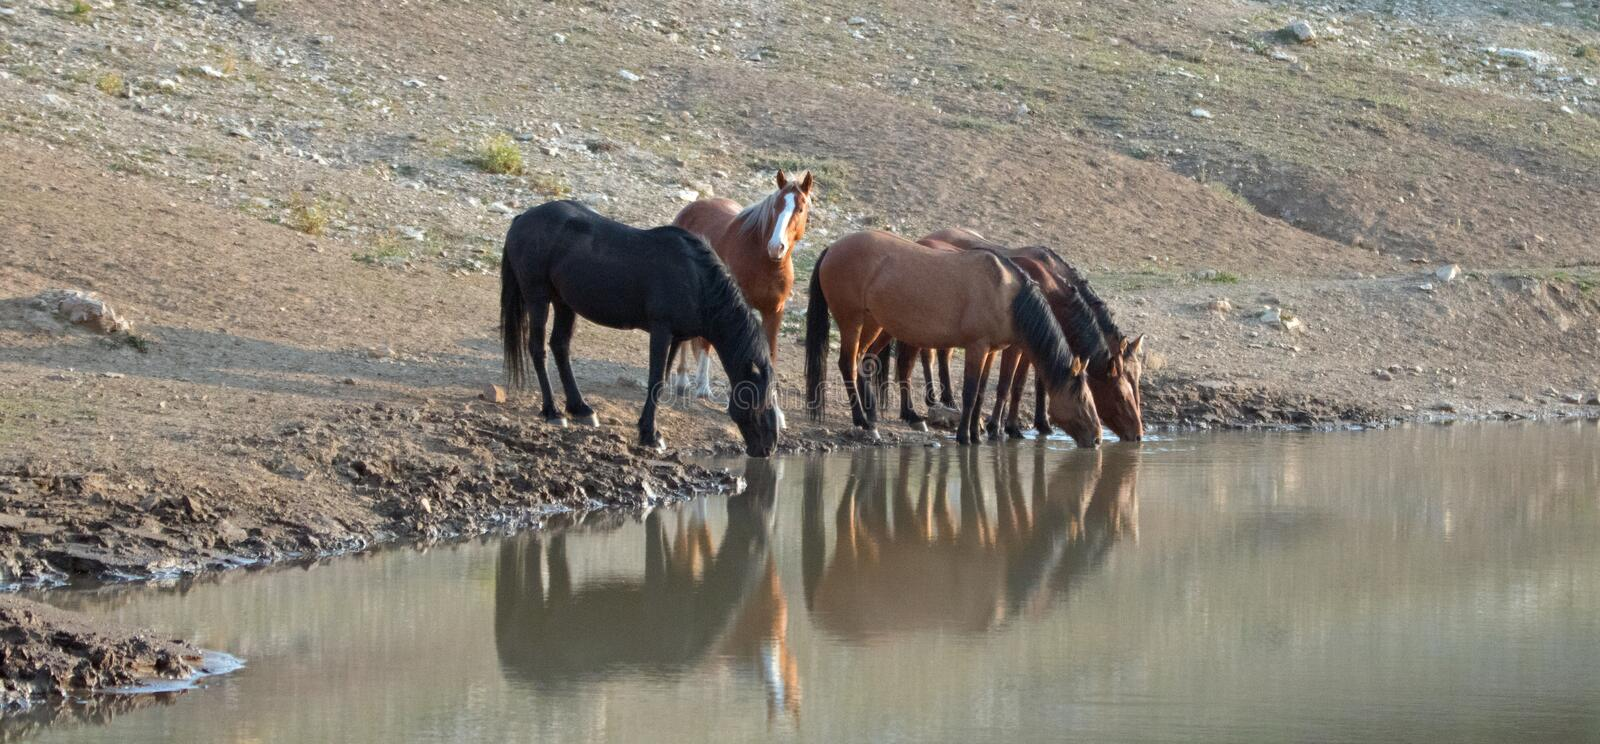 Herd of wild horses reflecting in the water while drinking at the waterhole in the Pryor Mountains Wild Horse Range in Montana USA. Herd of wild horses royalty free stock image